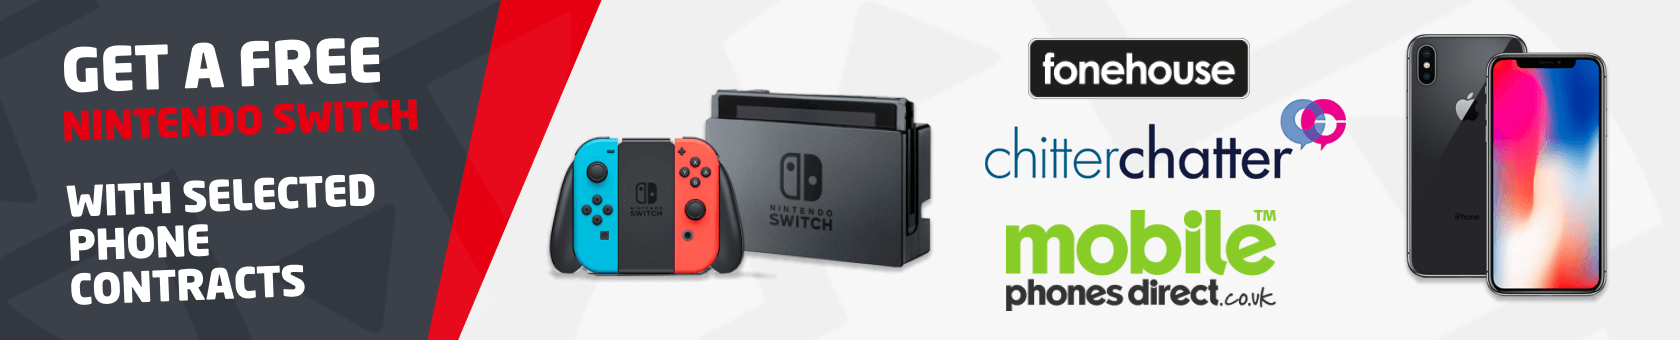 Free nintendo switch with phone deals